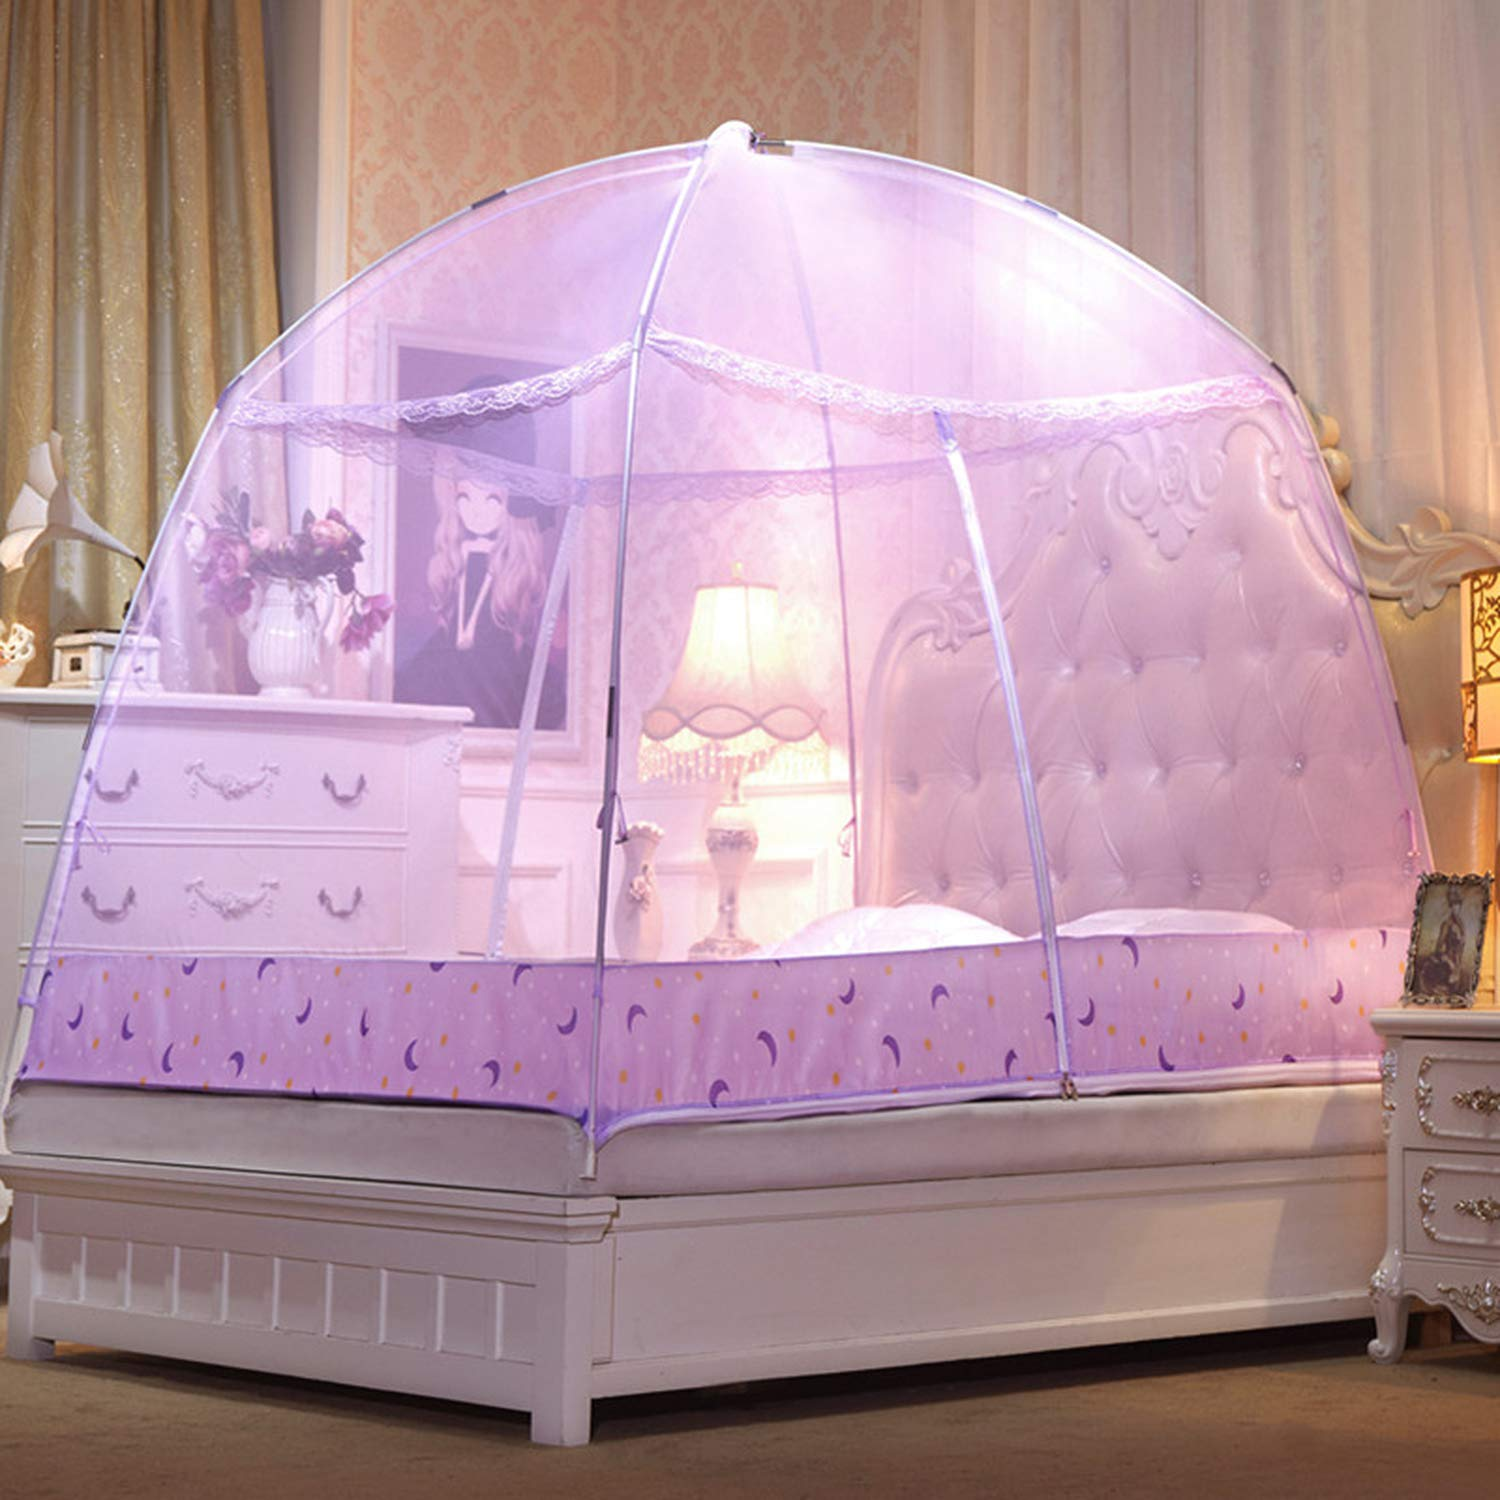 Romantic Purple Dome Mosquito Net Double Door Polyester Fabric Bed Netting Canopy Mosquito Netting Folding Netting Tent Bed,White,1.5m (5 feet) Bed by SuWuan mosquito net (Image #2)